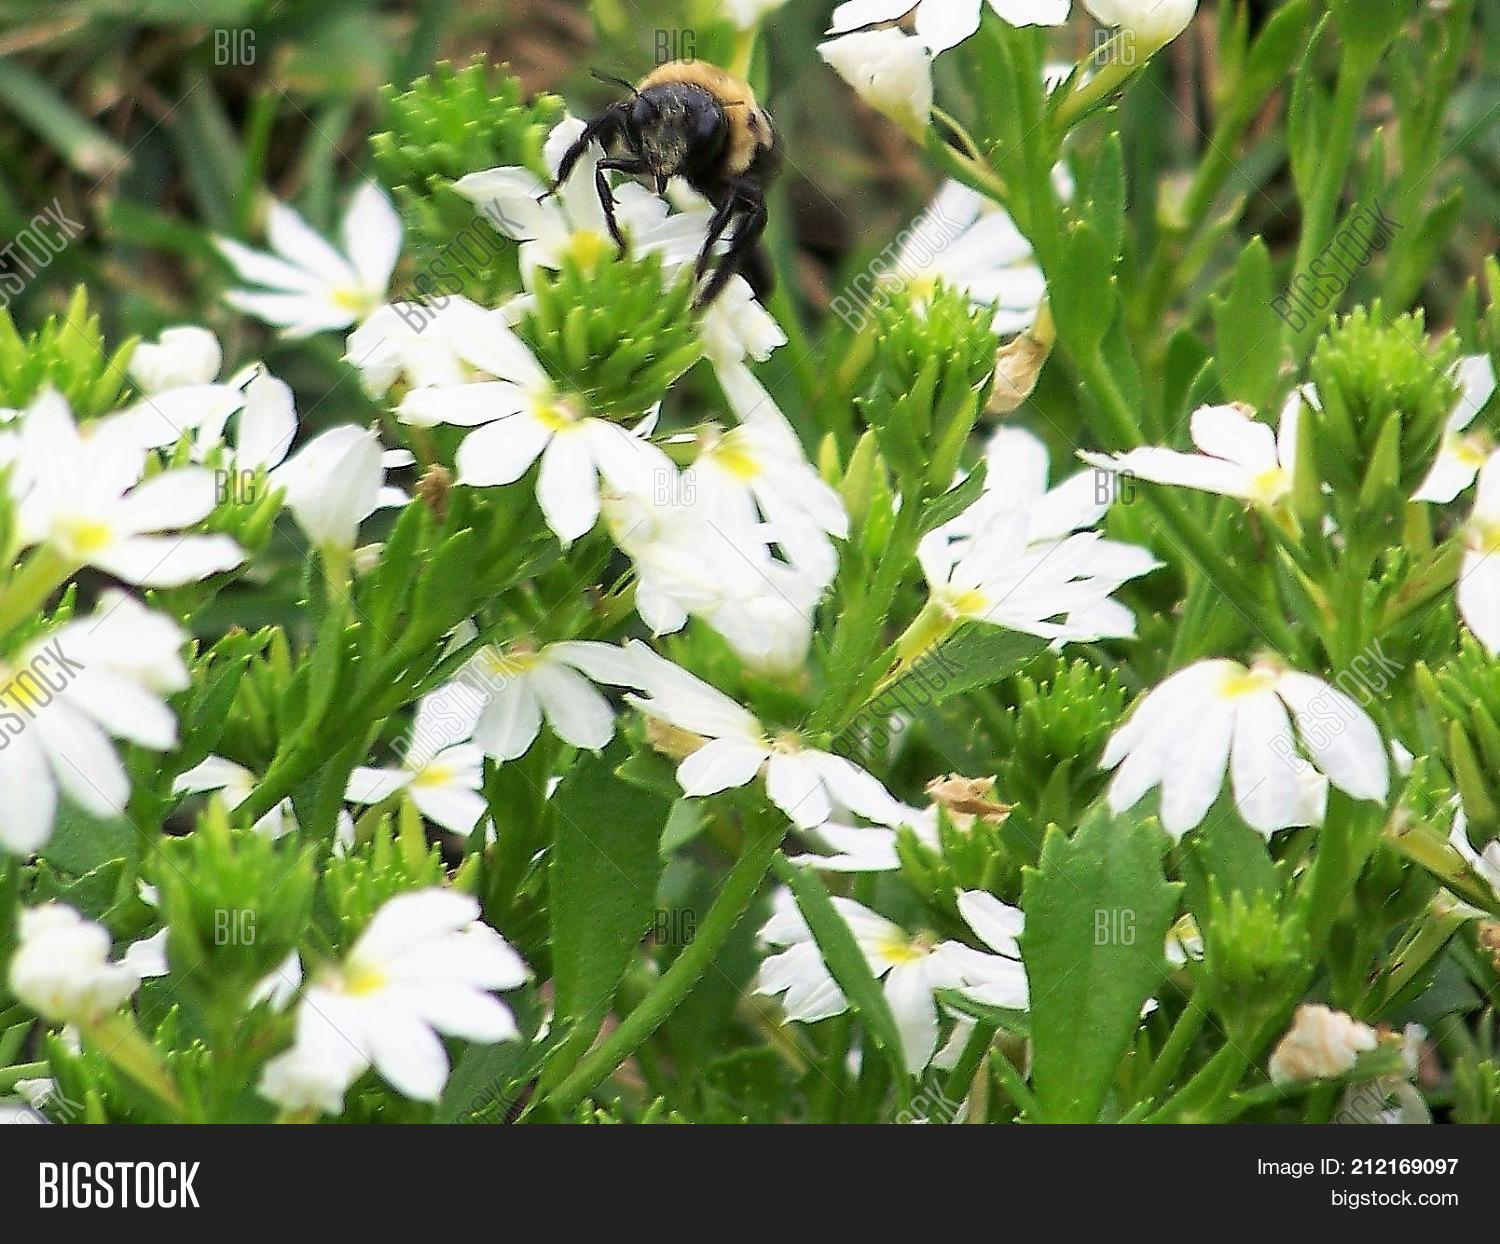 Busy Bug Field White Image Photo Free Trial Bigstock